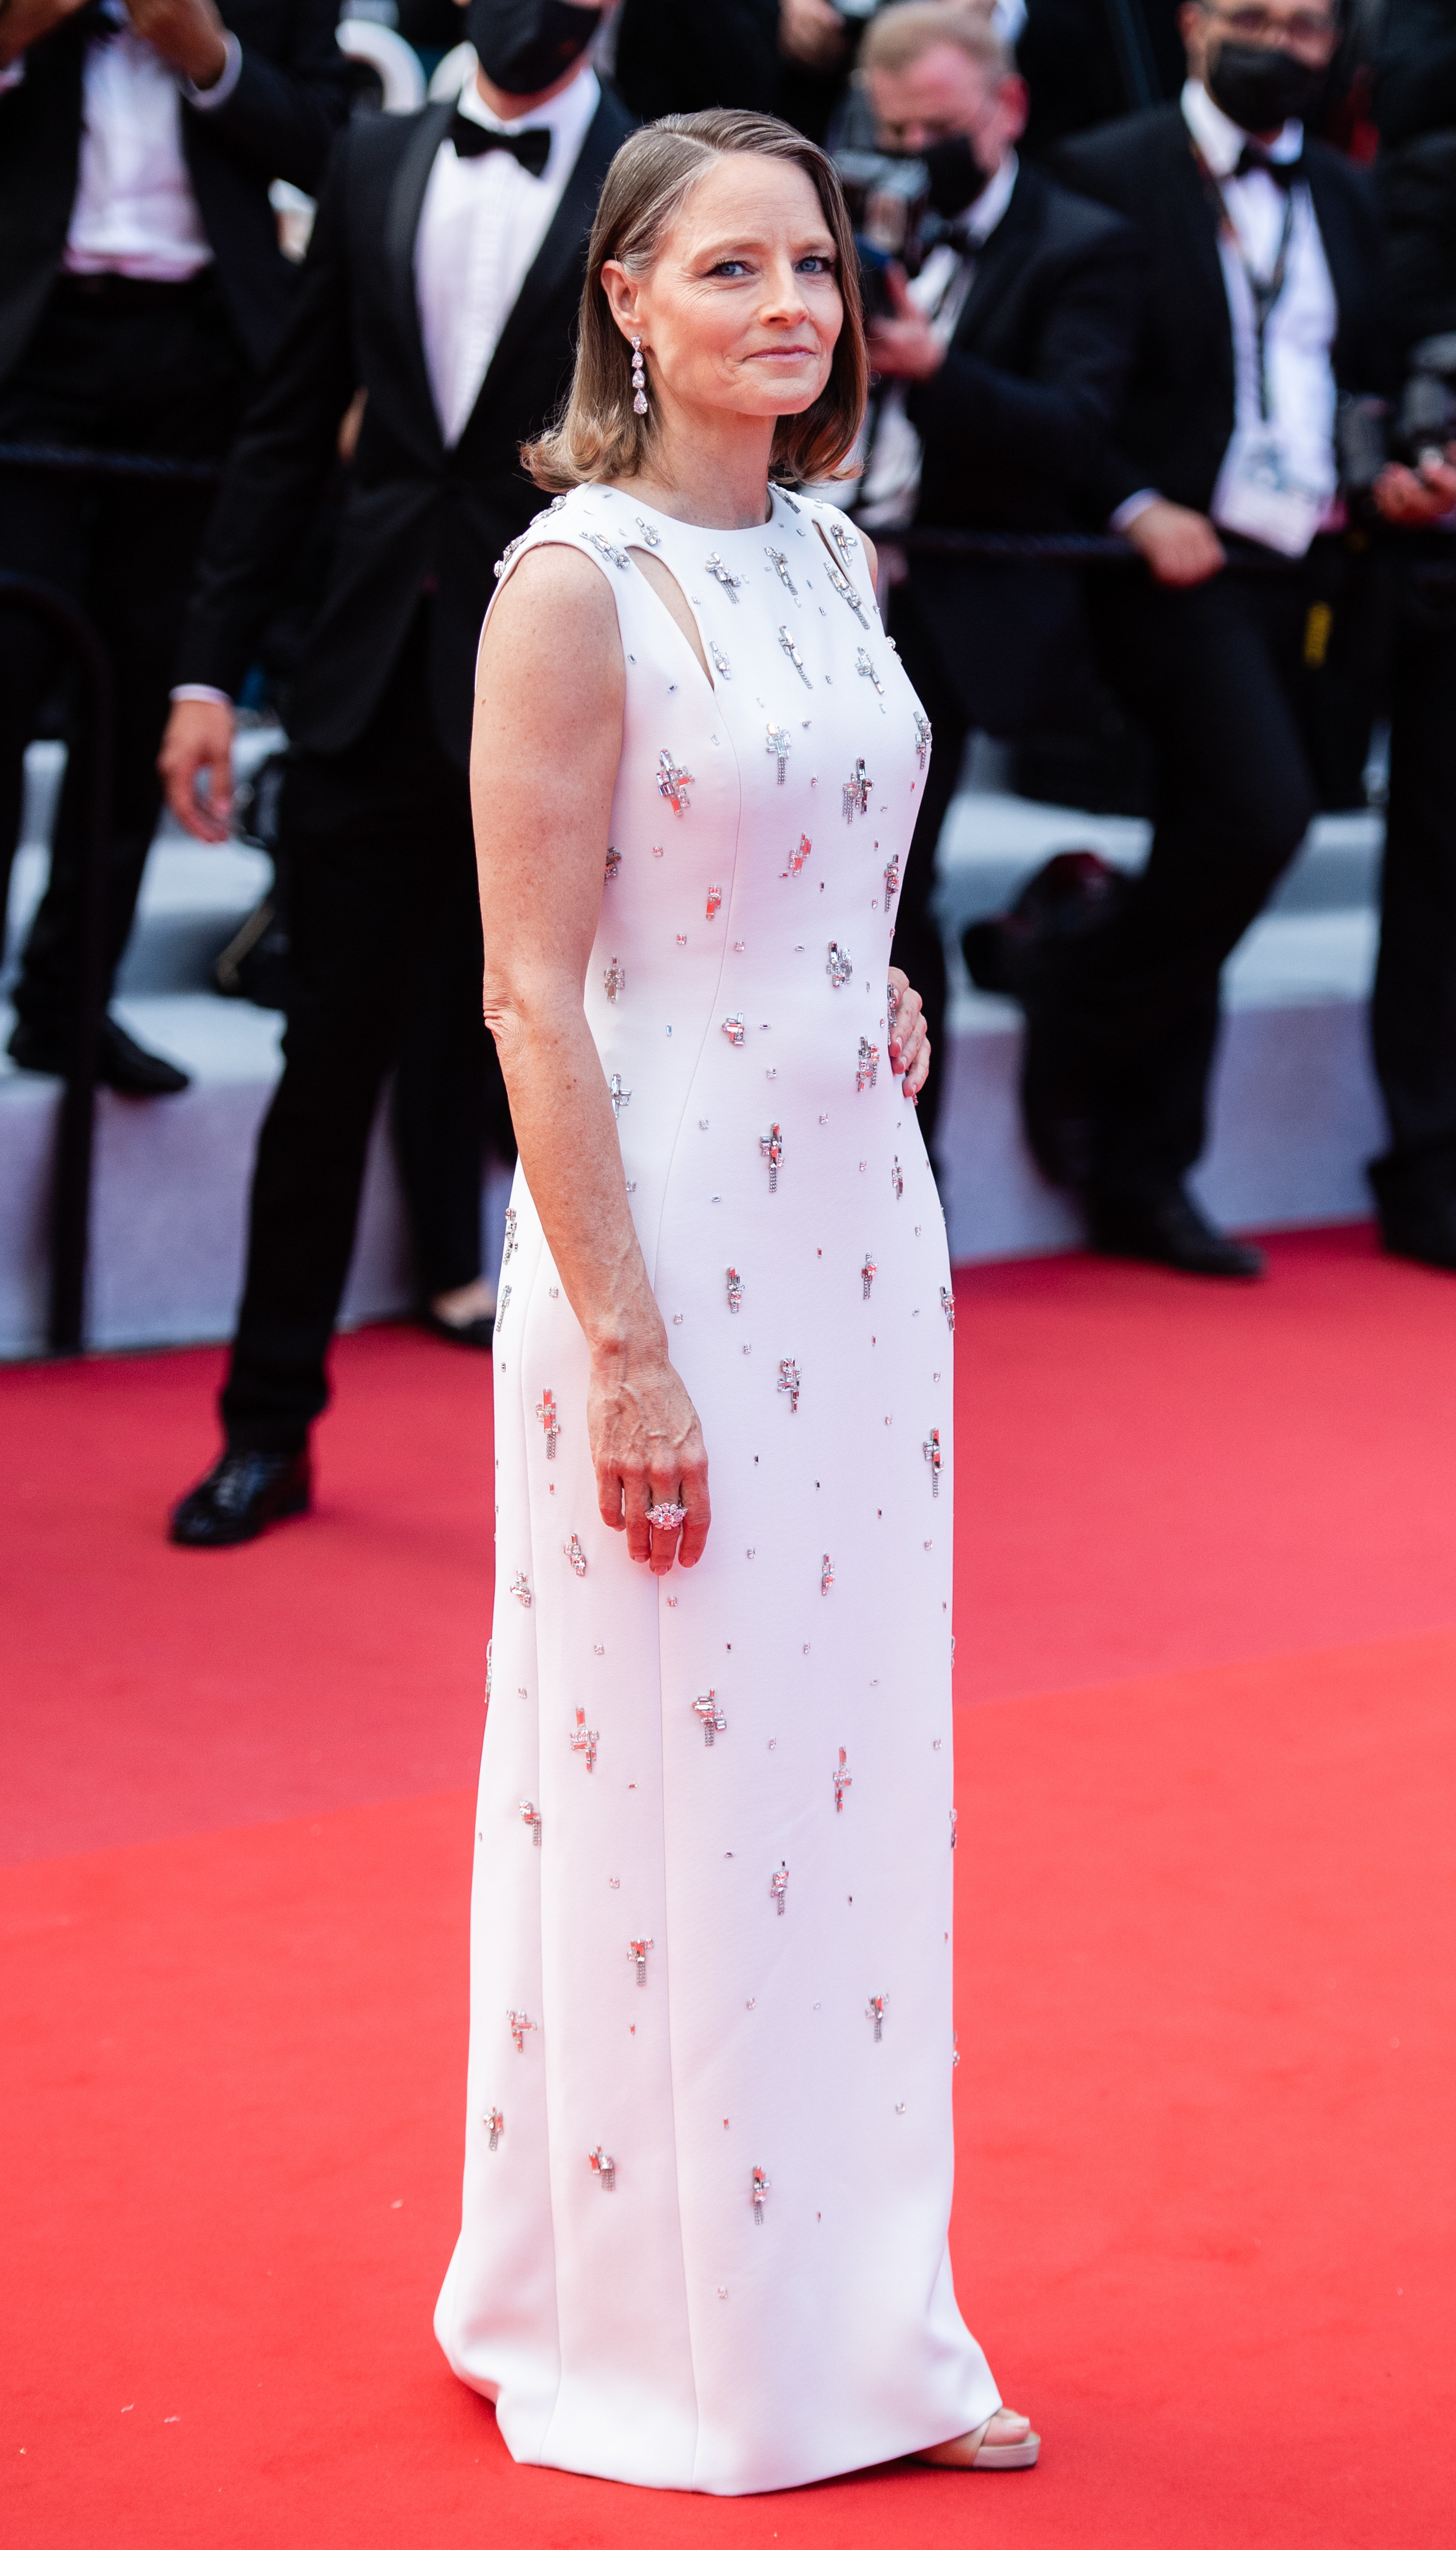 Jodie Foster at the Cannes Film Festival